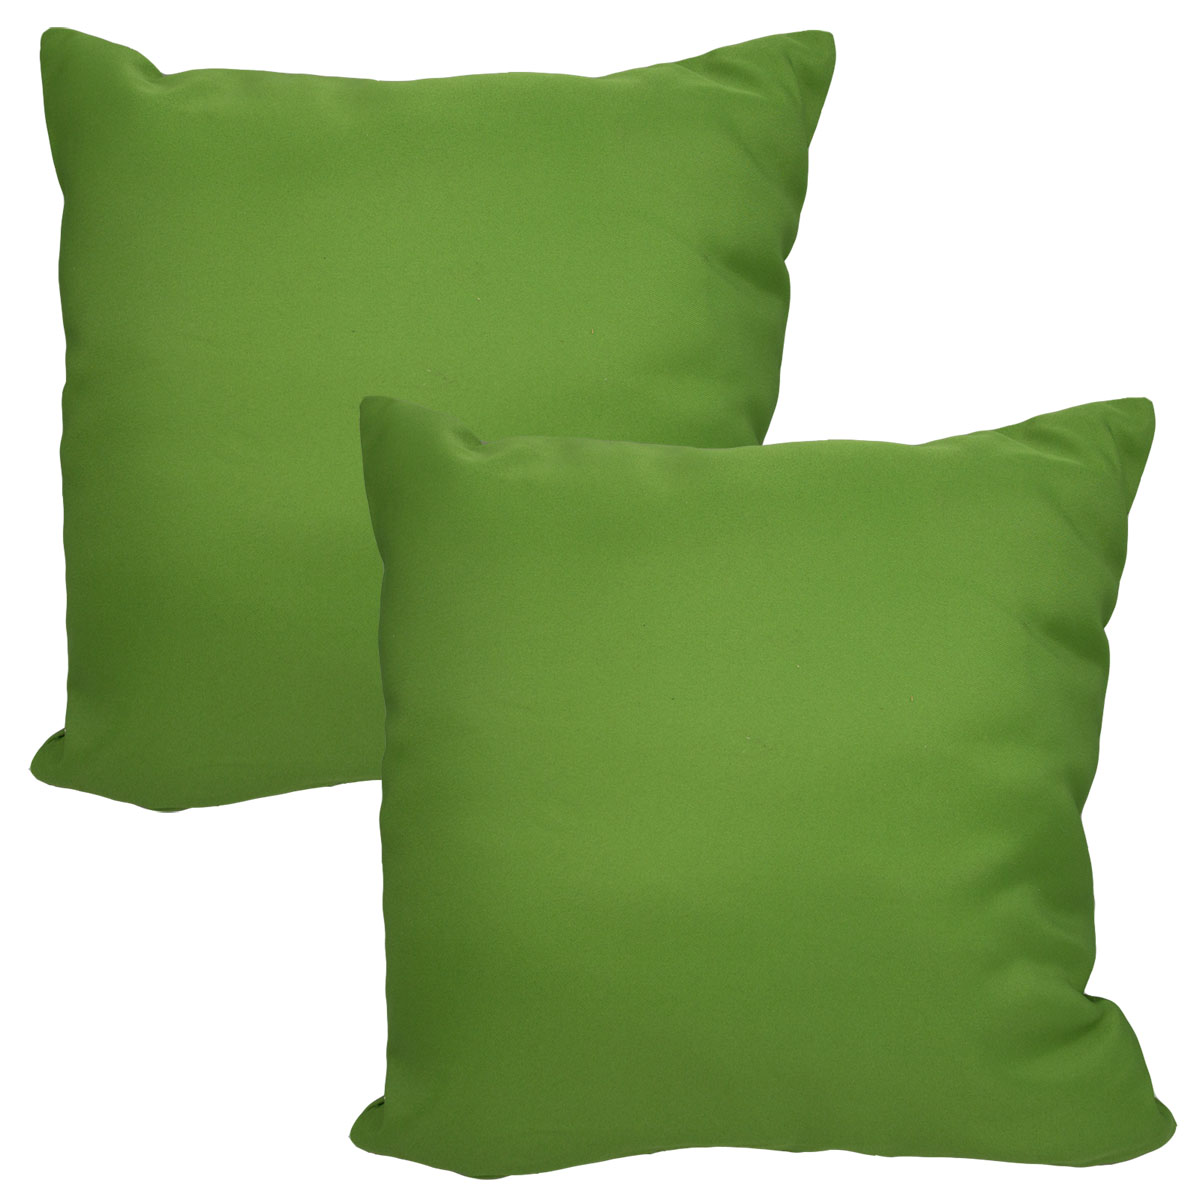 Set Of 2 Throw Pillows Indoor/Outdoor Couch Furniture